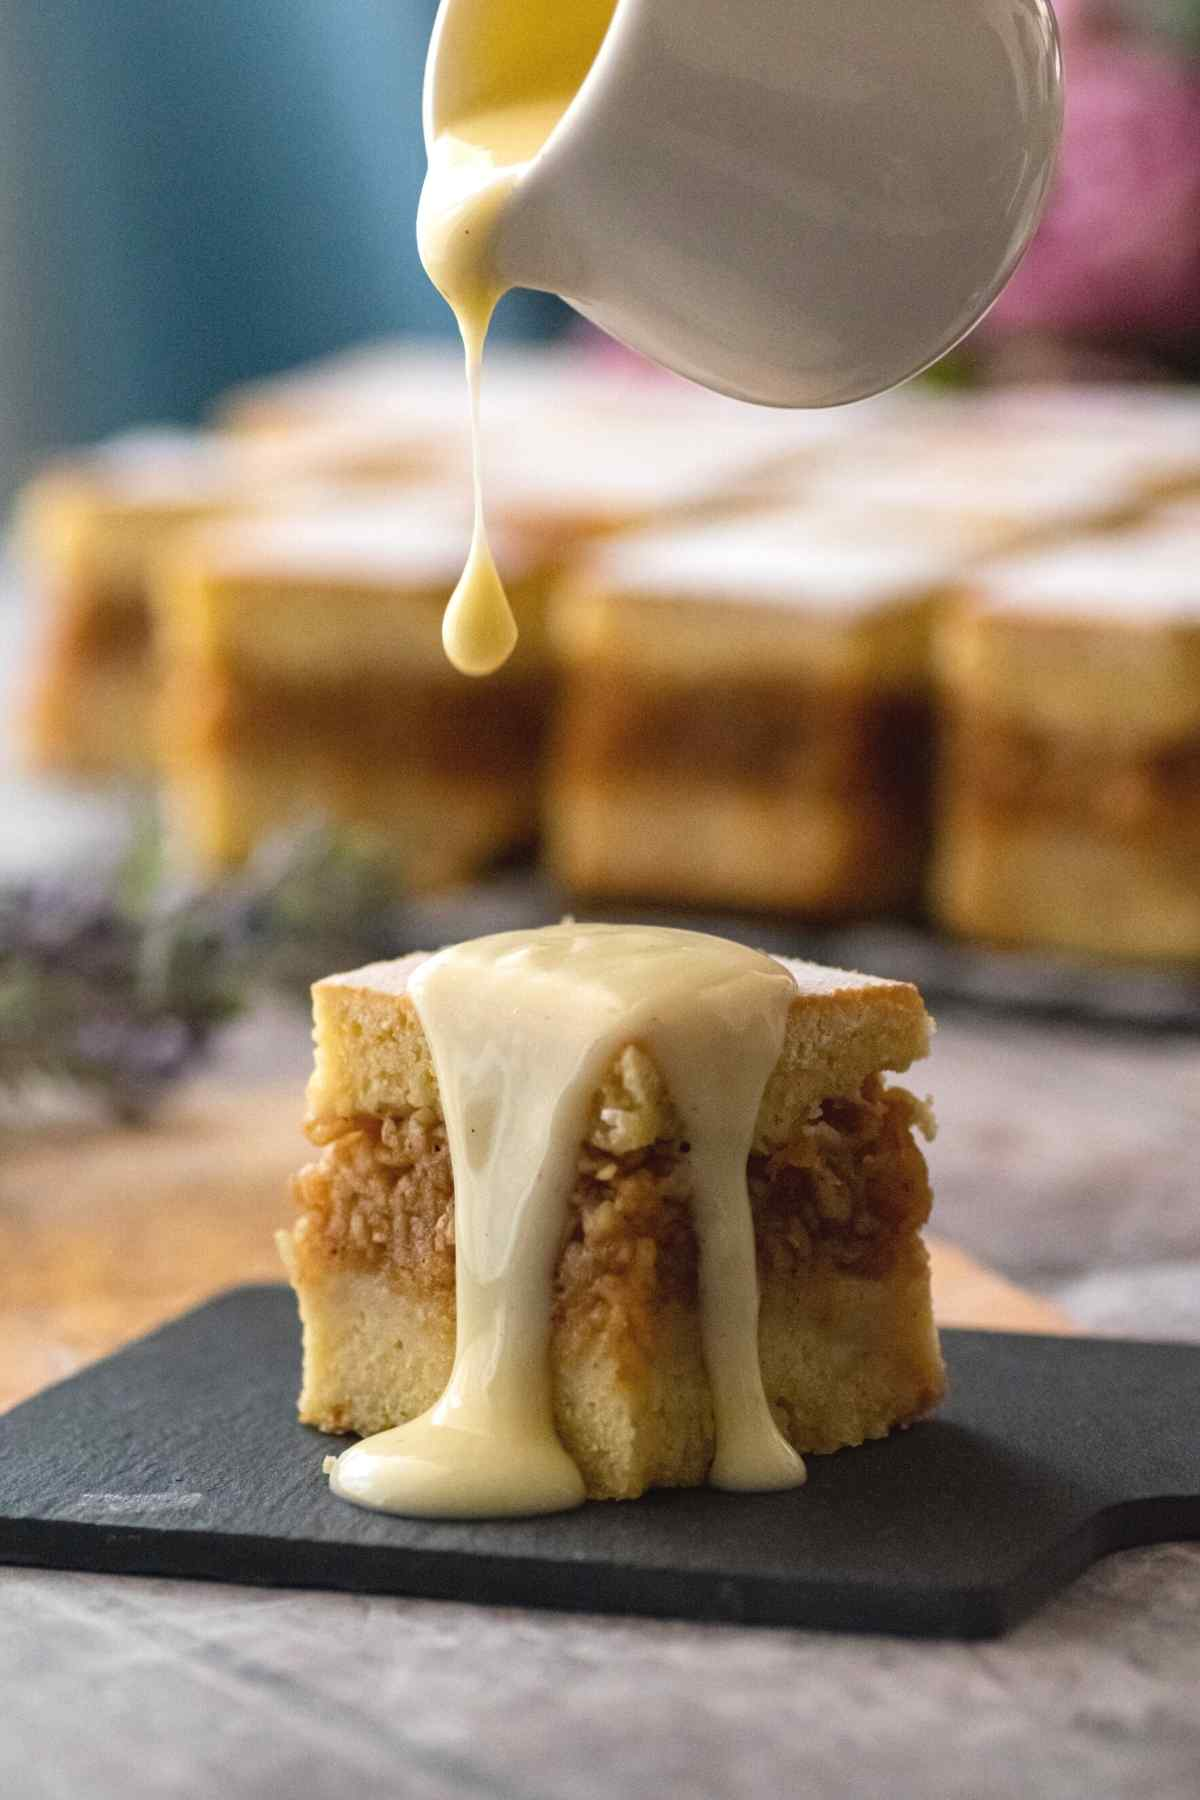 Drizzling pastry cream over slice of apple cake